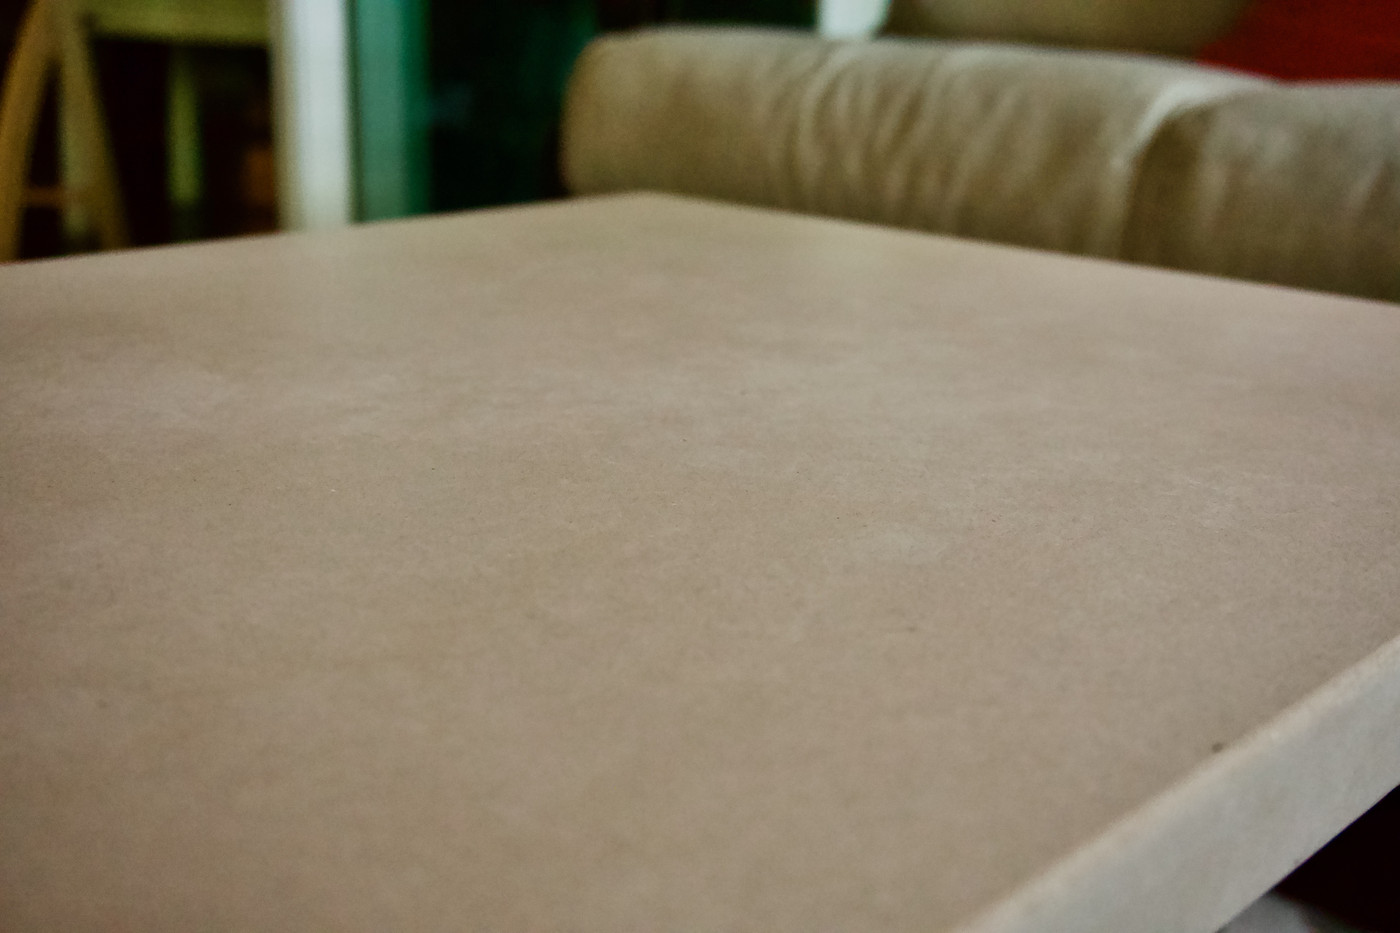 Covered Lanai Area With Concrete Coffee Table - Detail Shot